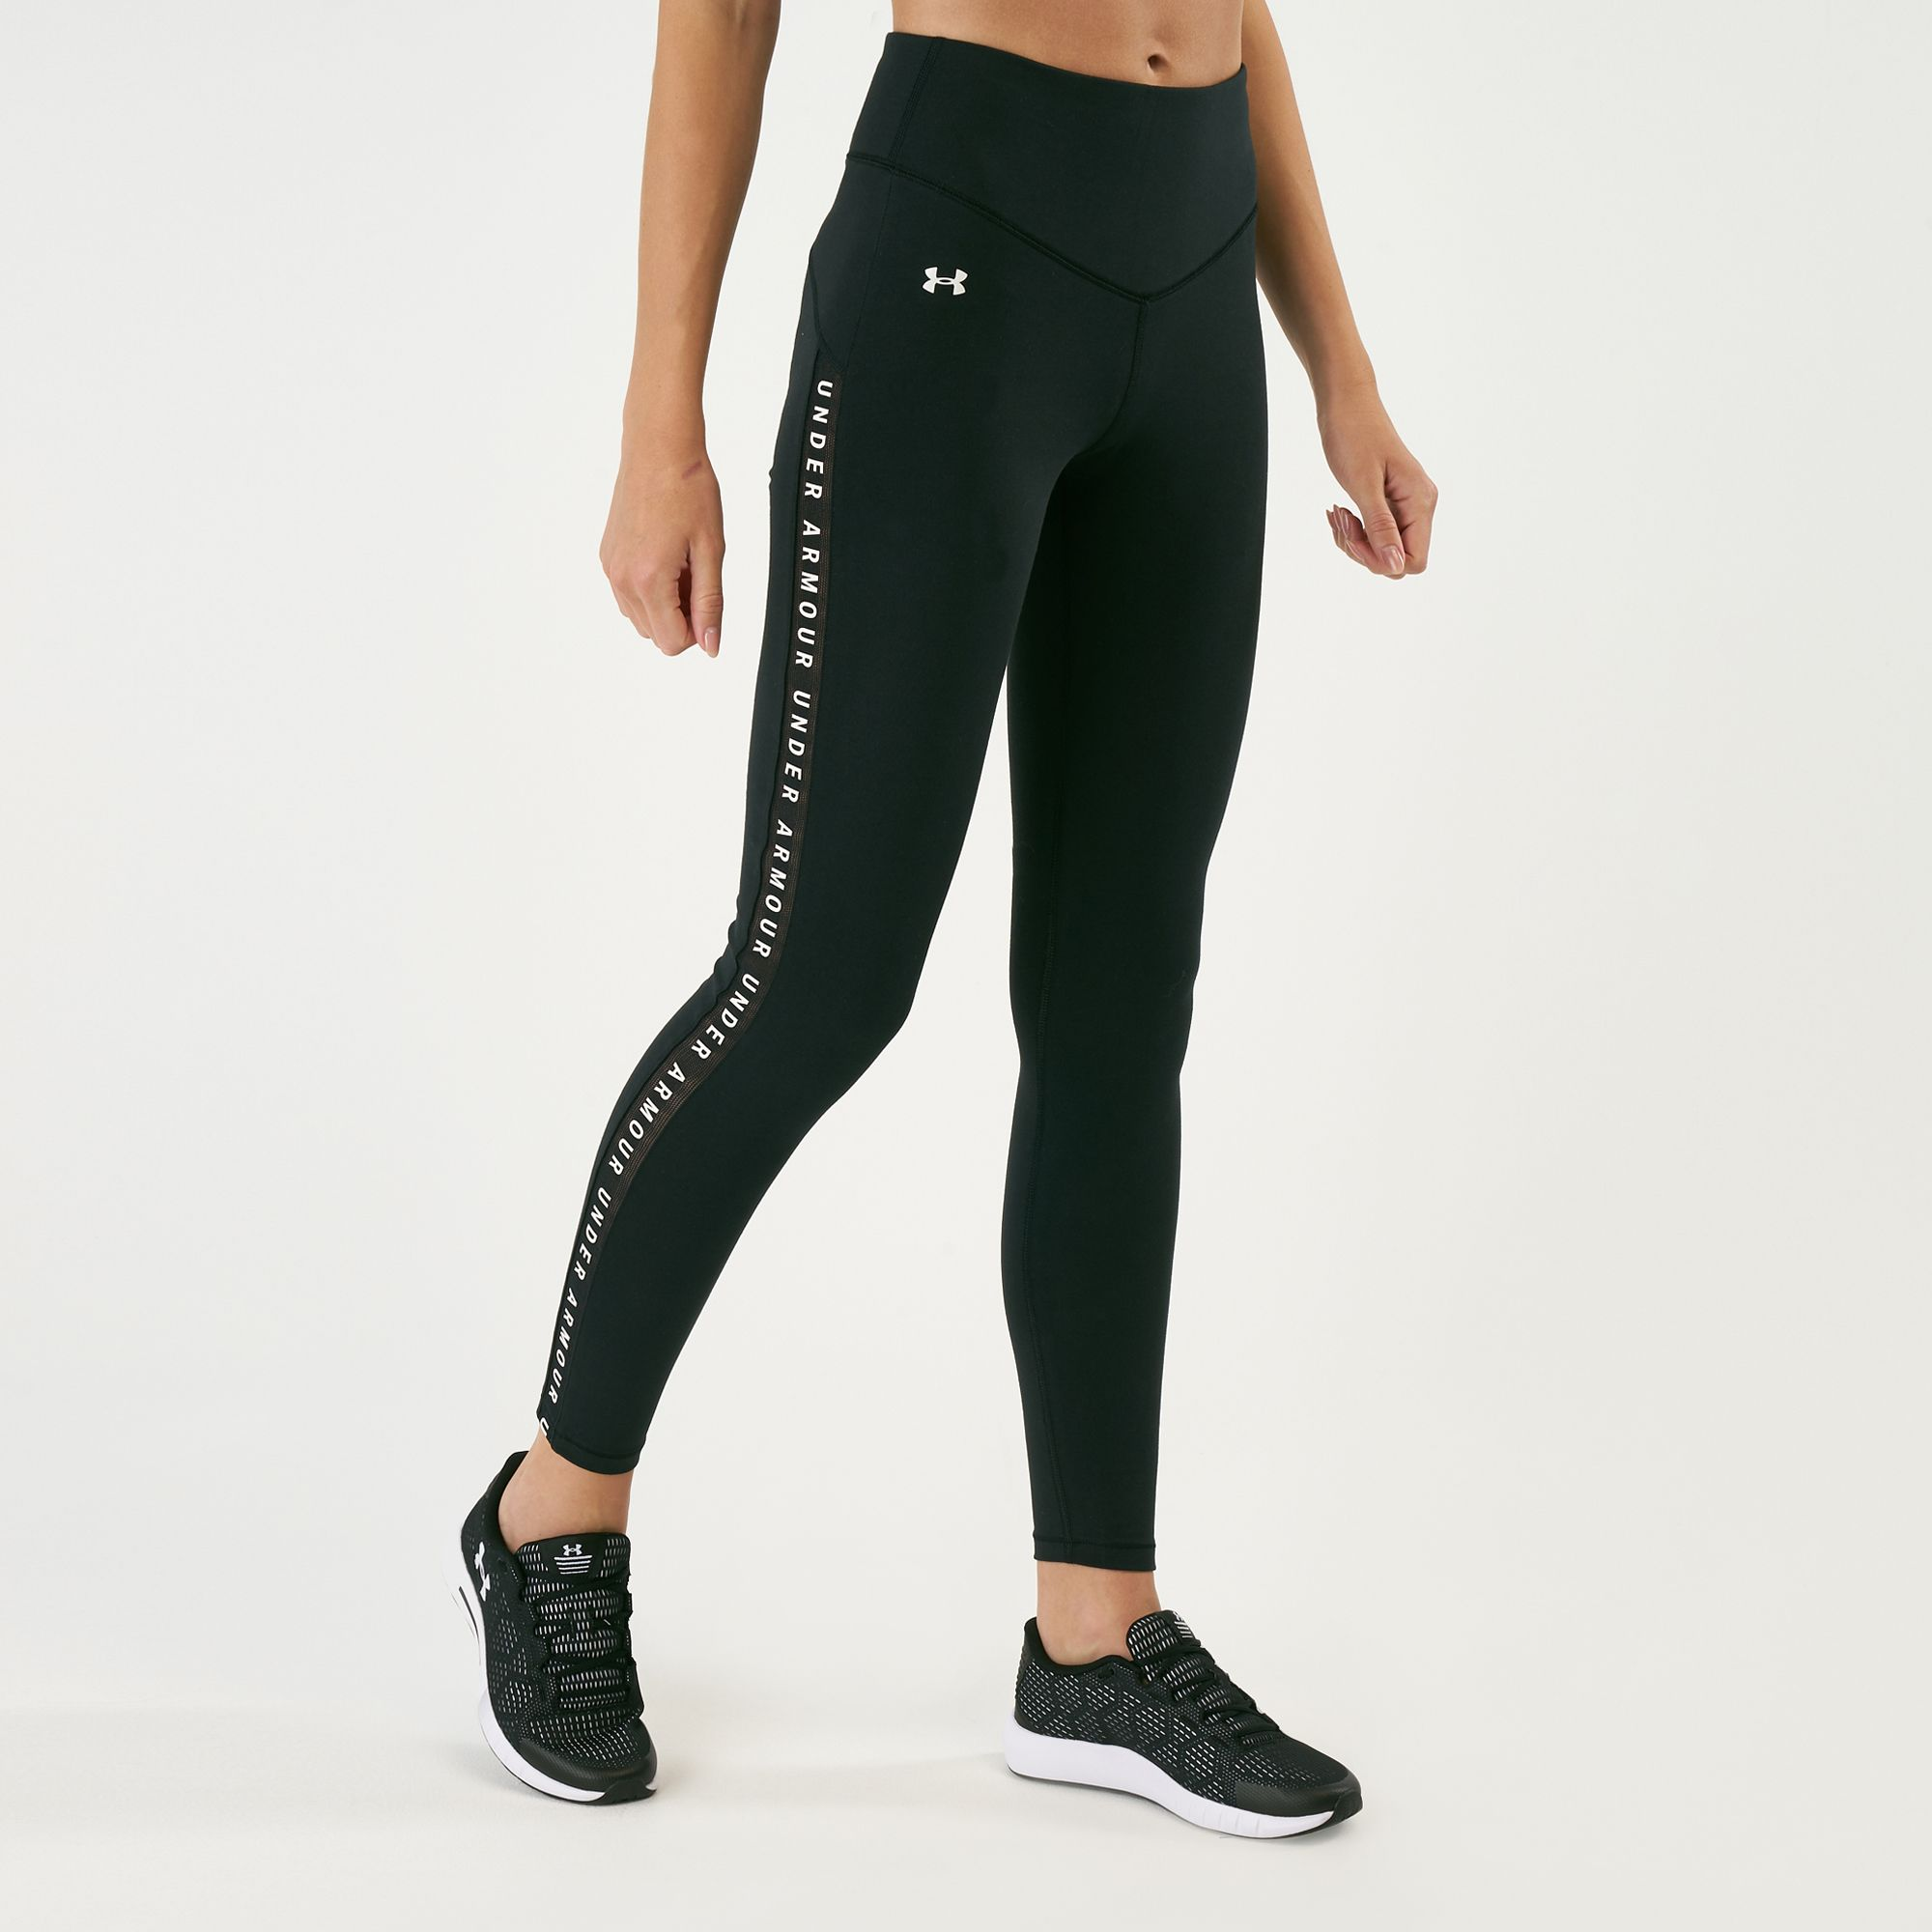 Arco iris política adherirse  Under Armour Women's Taped Favorite Leggings | Full Length Leggings |  Leggings | Clothing | Women's Sale | Sale | SSS